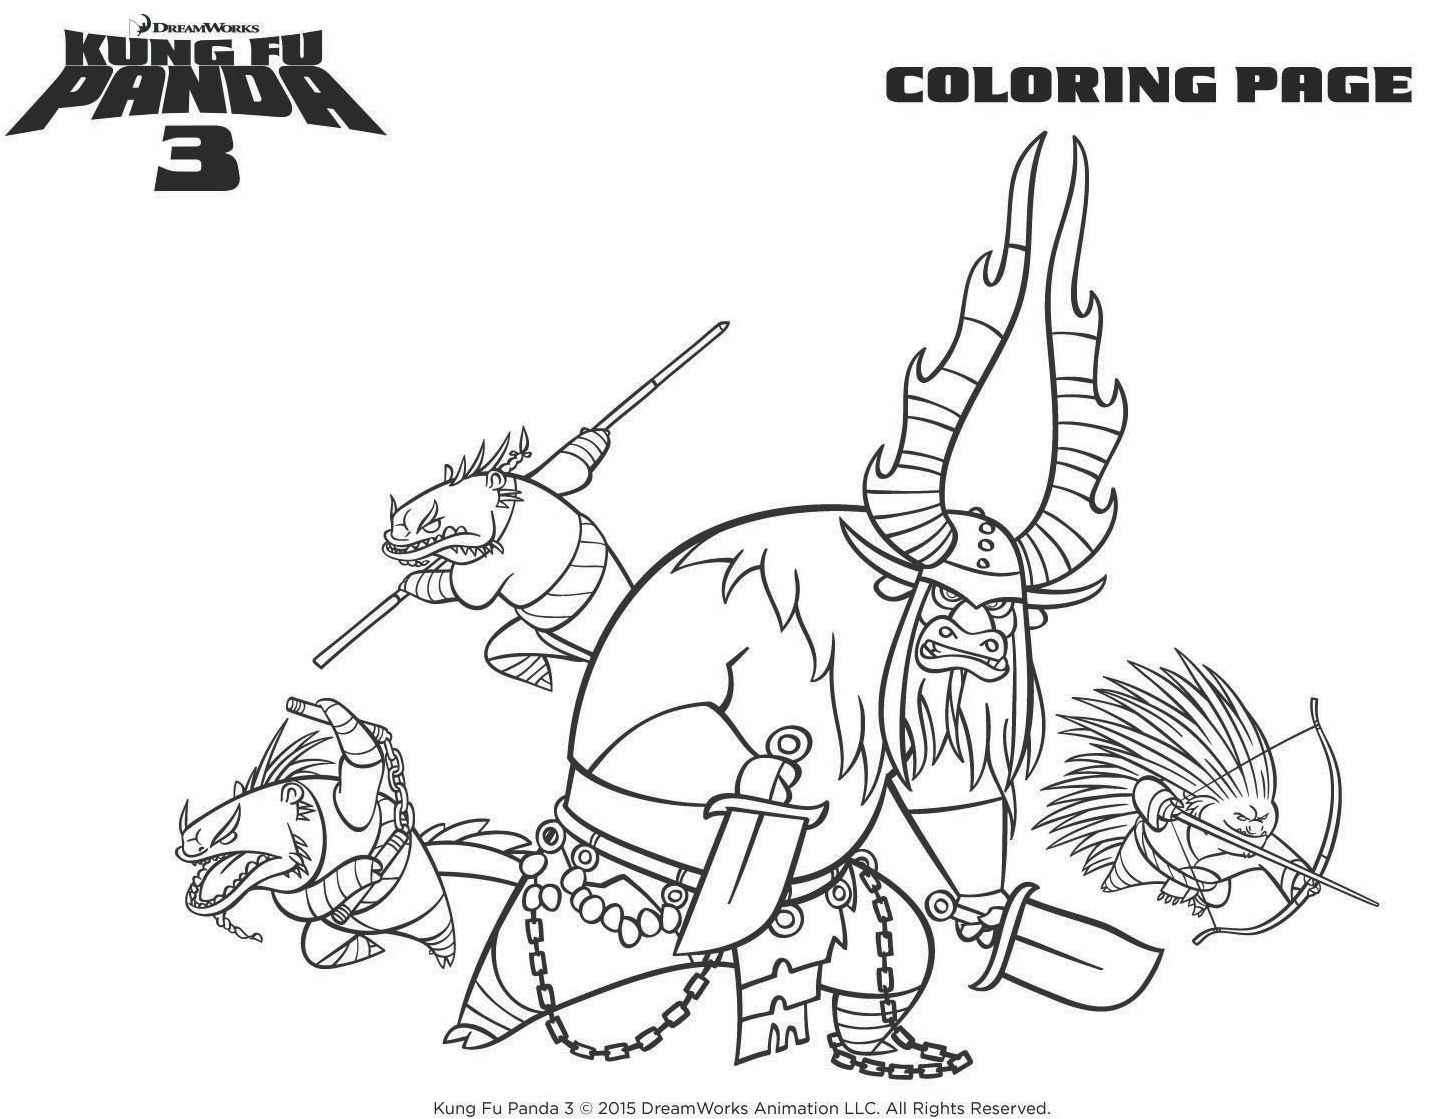 The gruffalo colouring pages to print - Kung Fu Panda Coloring Page